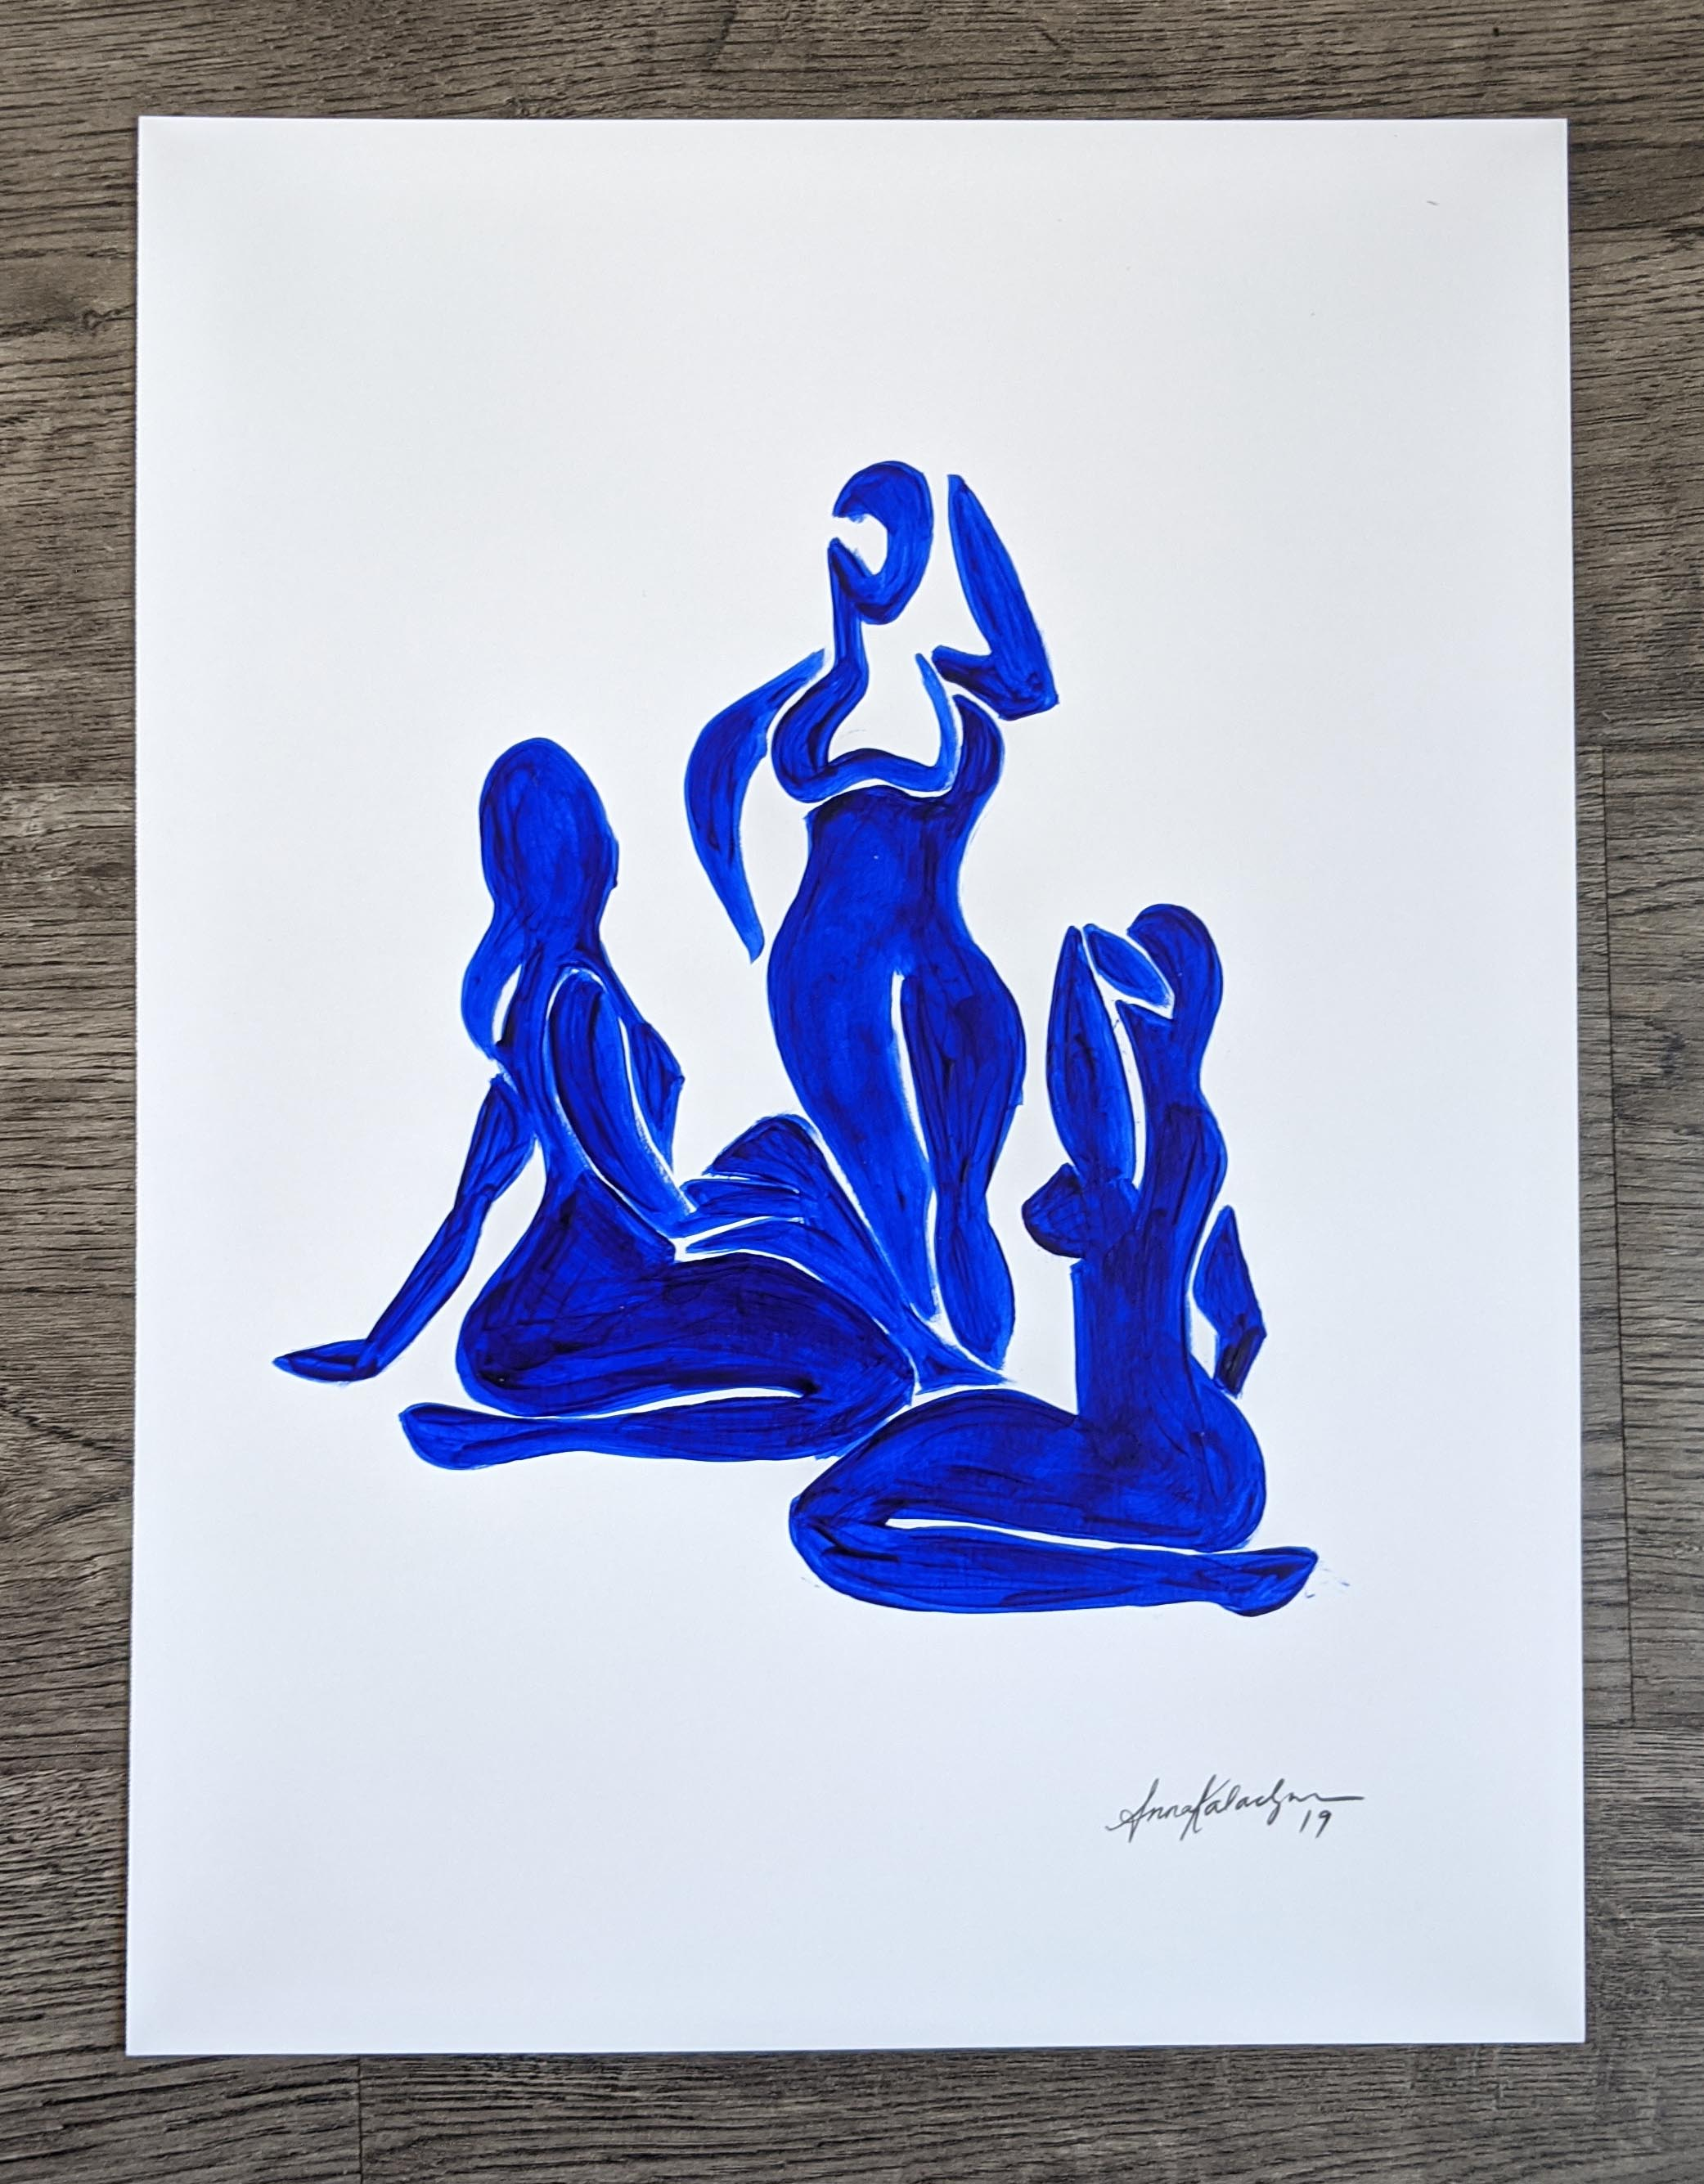 Three Women Study - Blue, 12x9 in